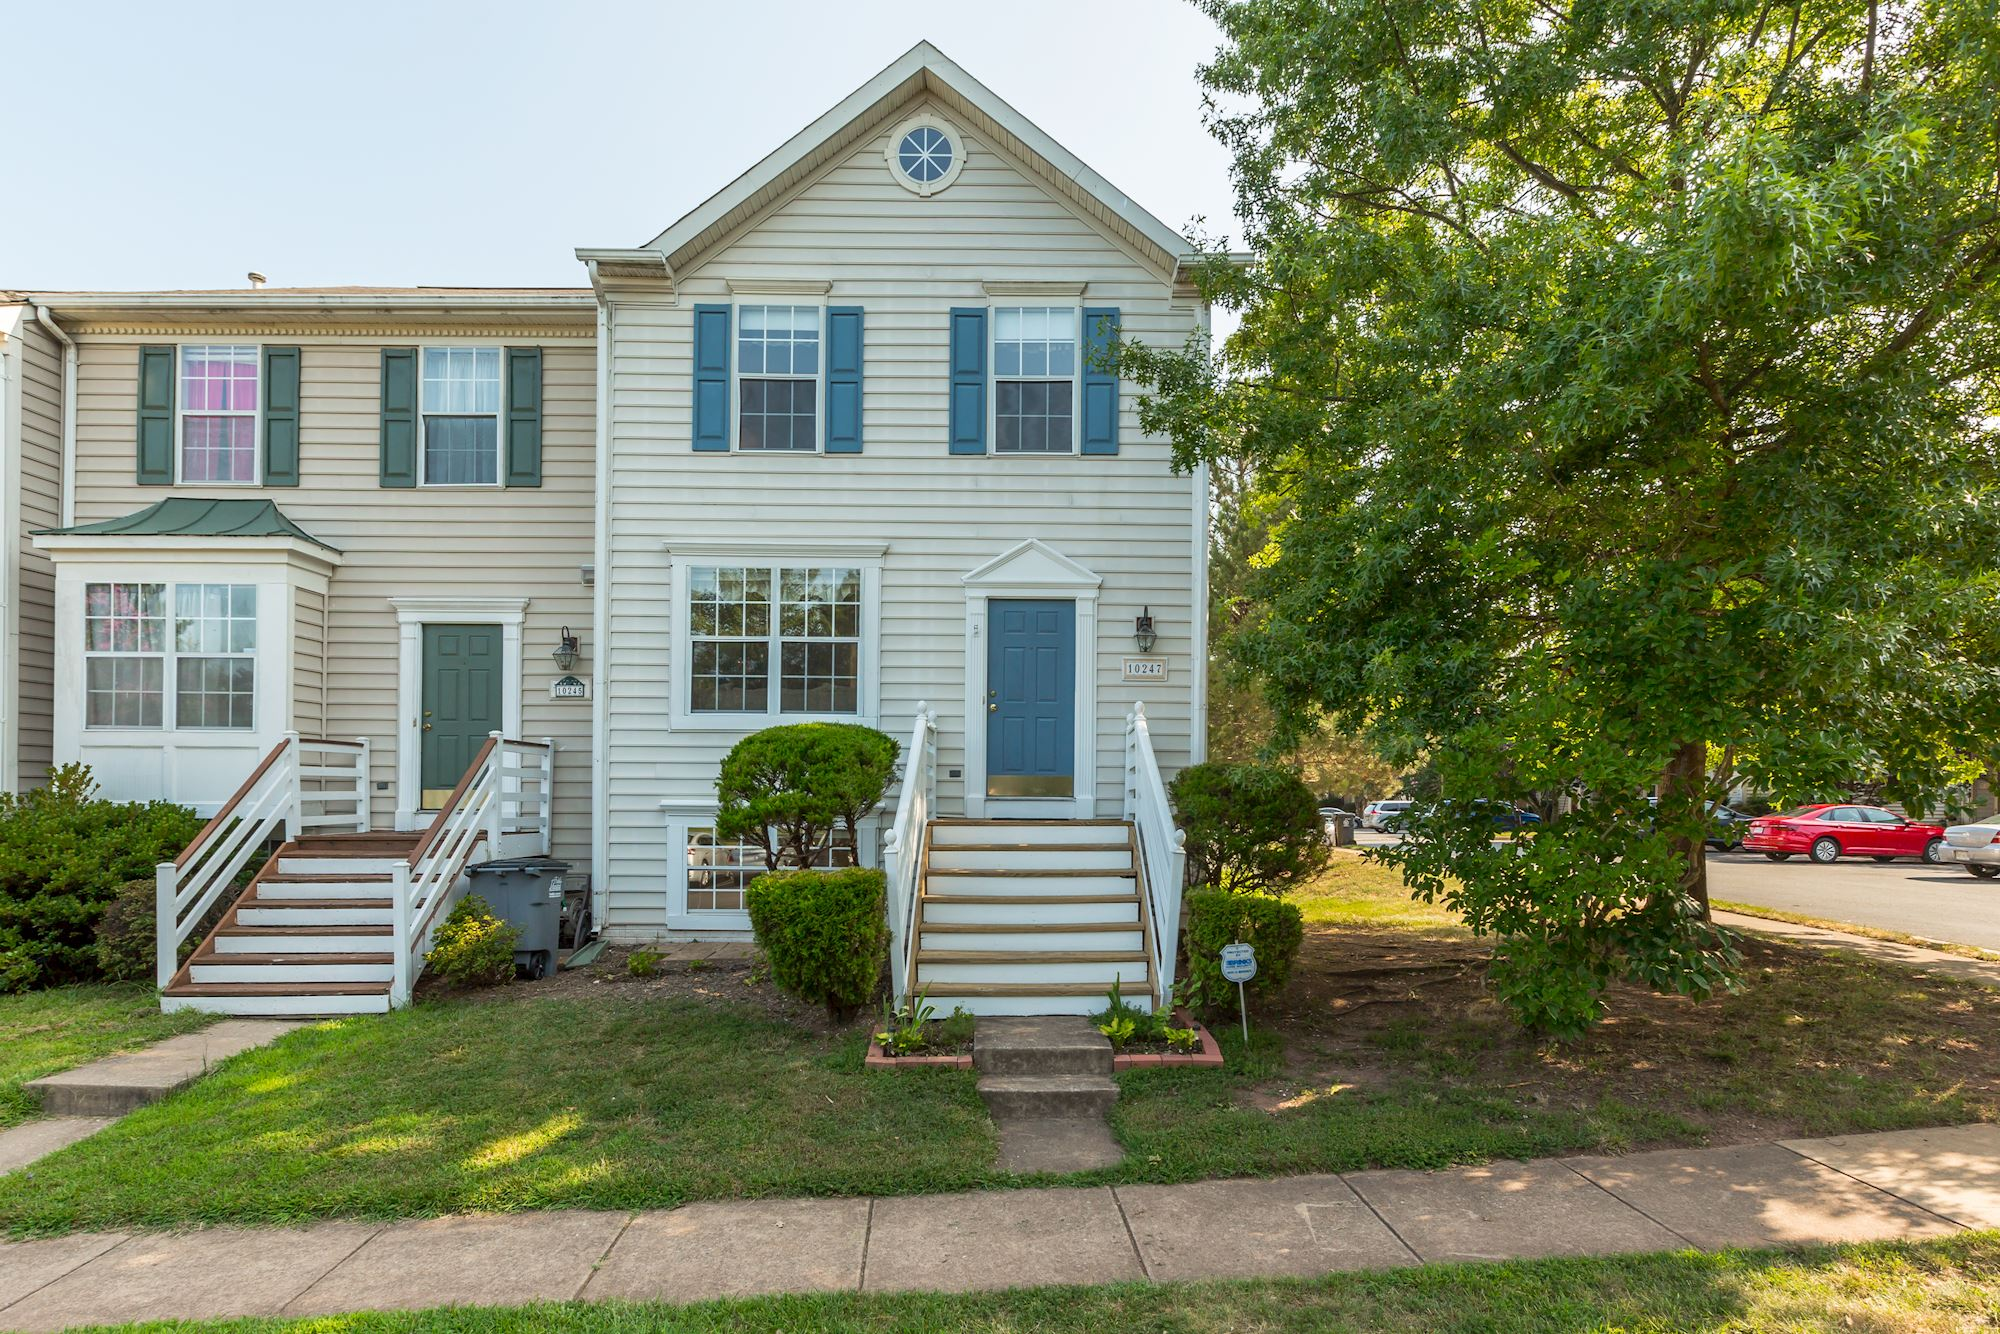 NEW LISTING: 4 BD End Unit Townhome in Manassas, VA